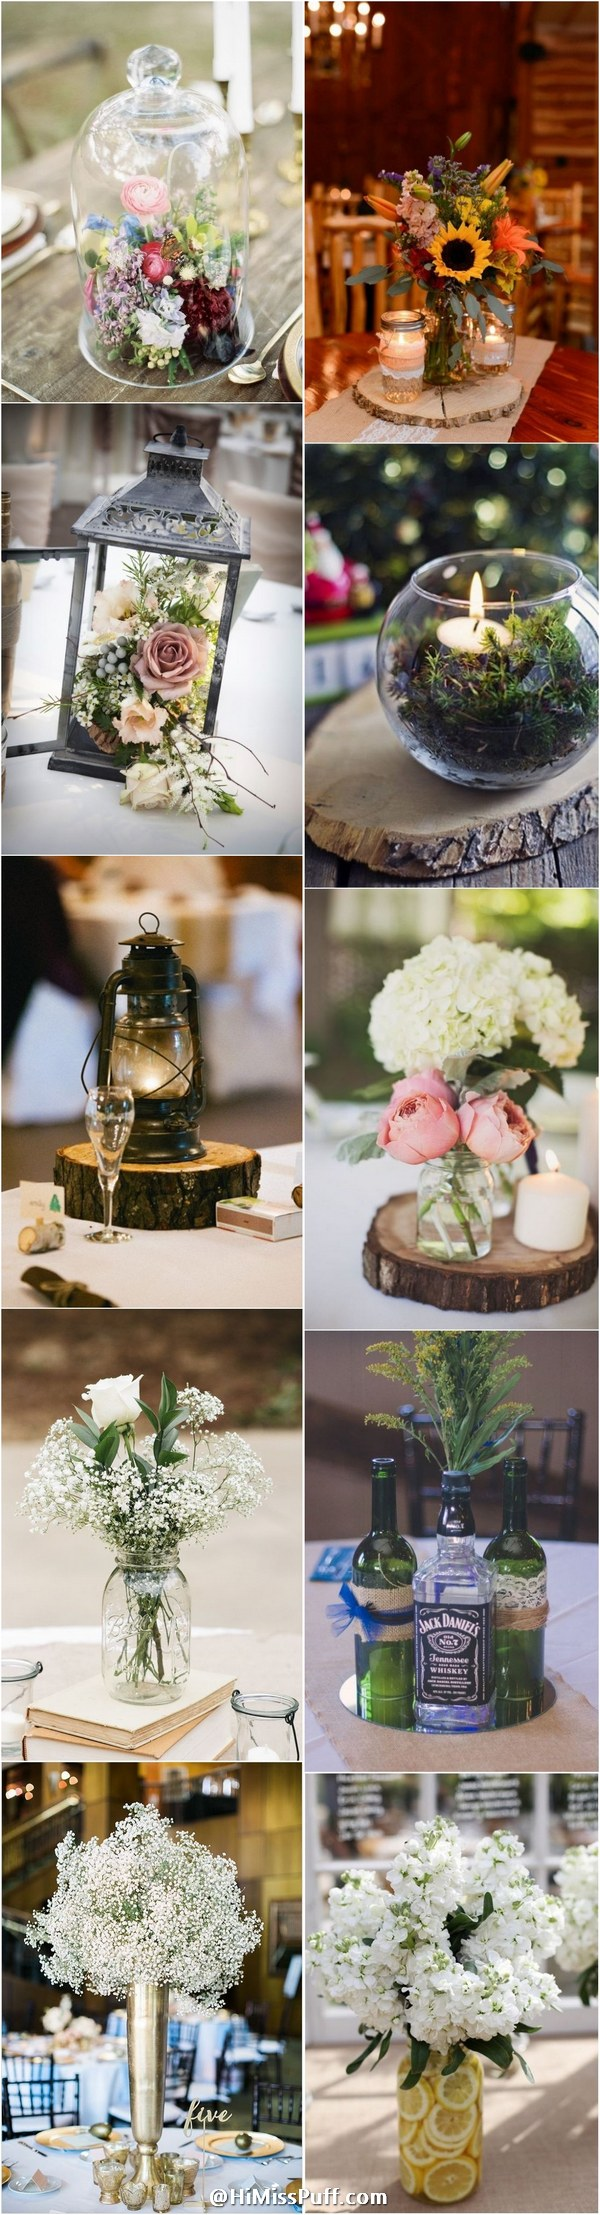 100 country rustic wedding centerpiece ideas country wedding 100 country rustic wedding centerpiece ideas junglespirit Image collections